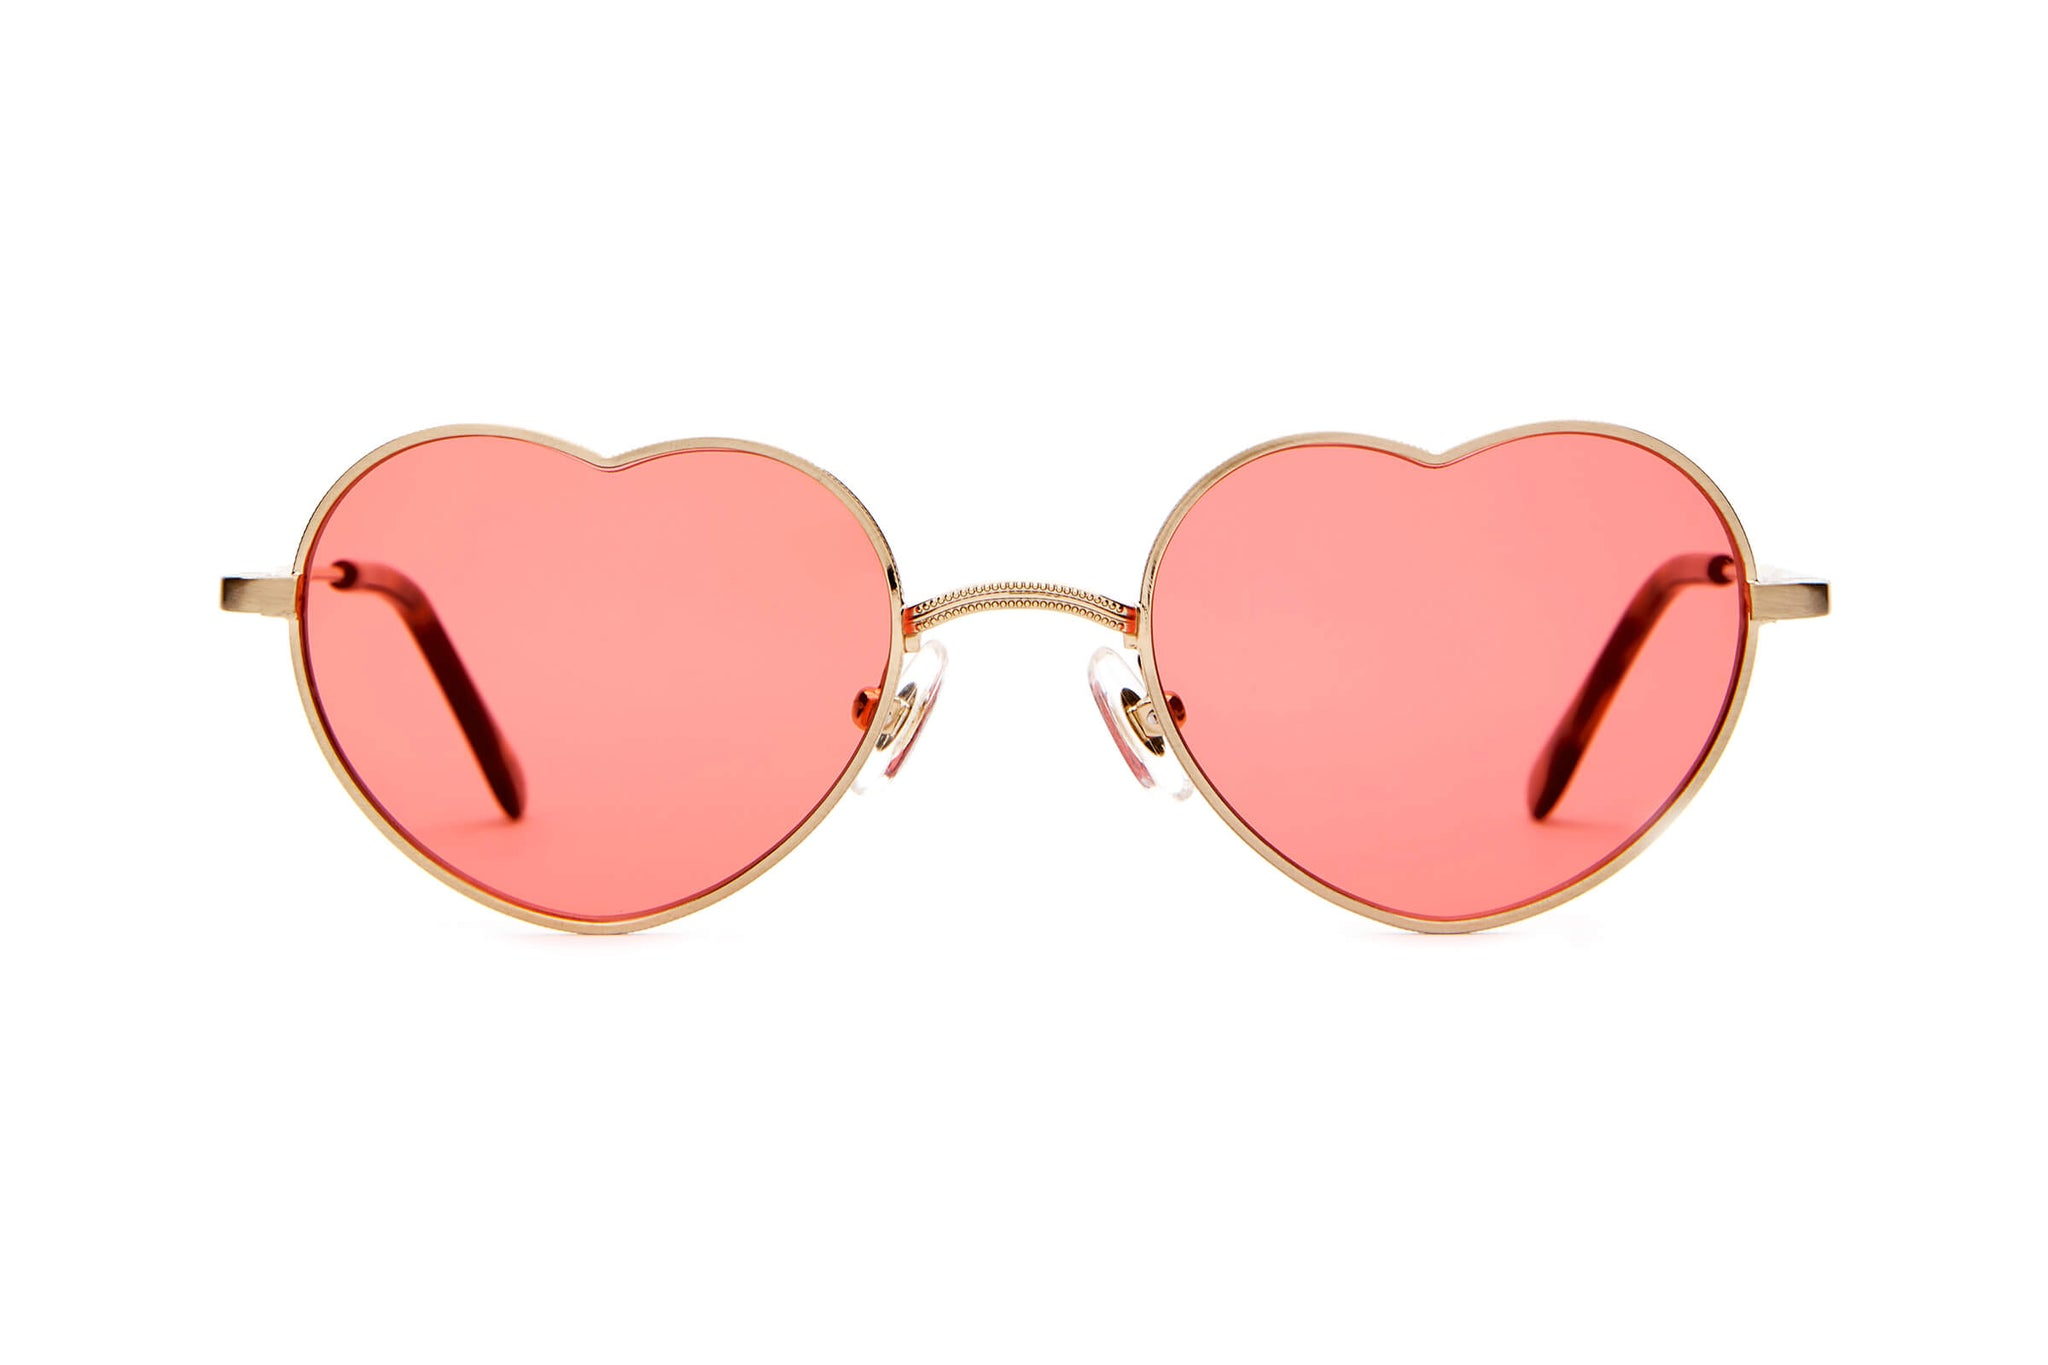 The Doctor Love - Brushed Gold & Dark Tortoise - / Deep Rose - Sunglasses